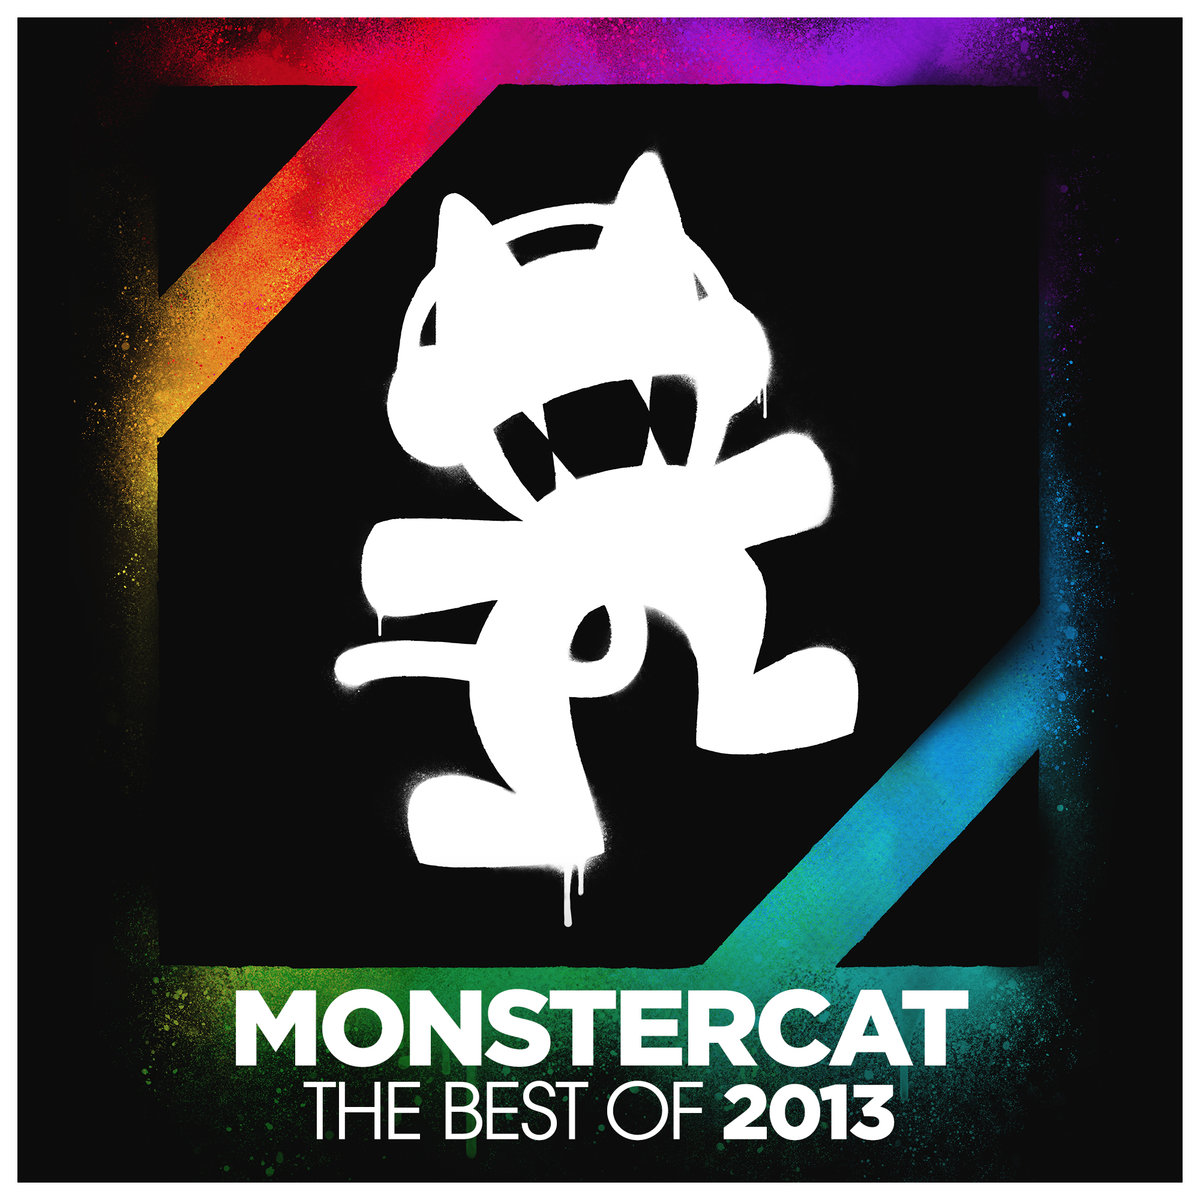 Melodies of Memories Past (Monstercat 2013 Orchestral Suite